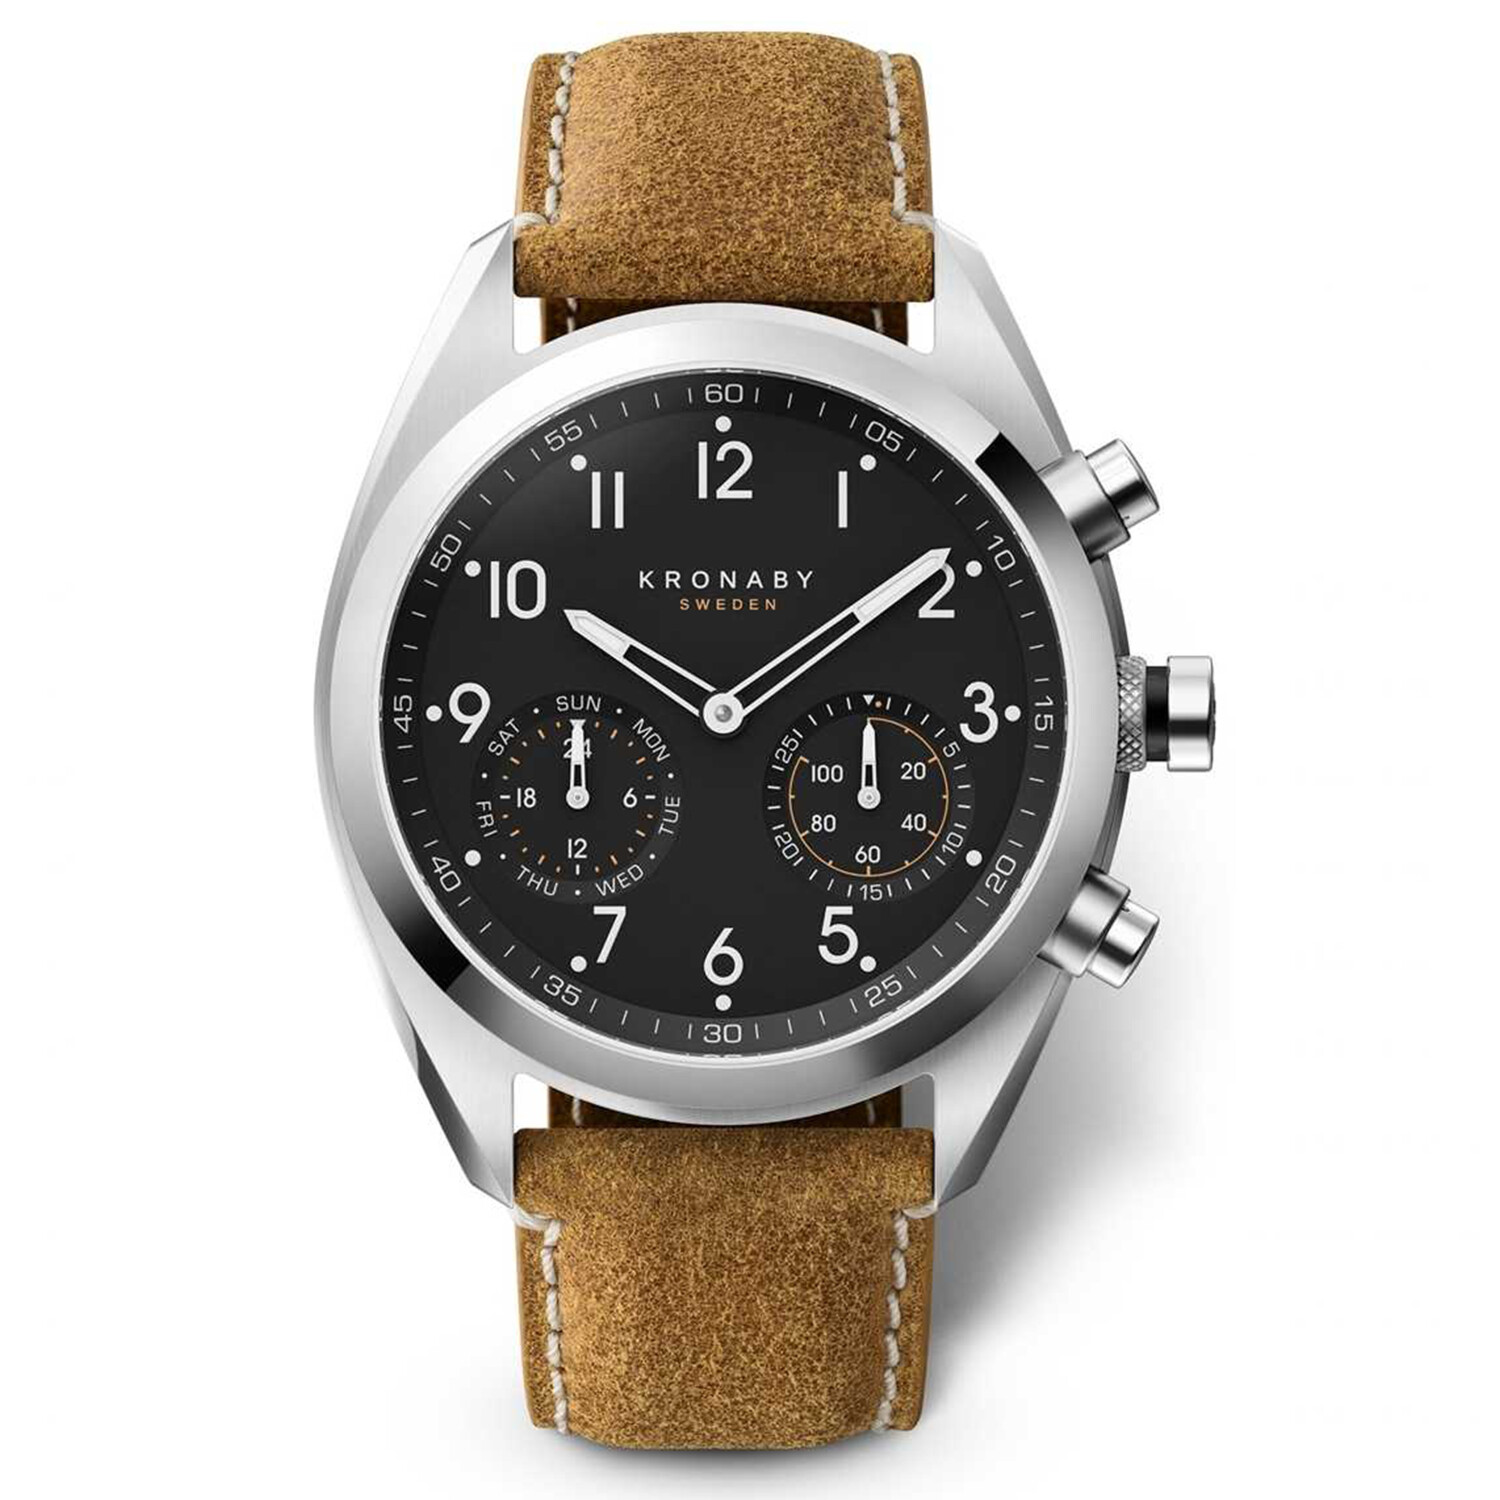 Kronaby Apex S3112-1 Brown Leather Automatic Self Wind Smart Watch